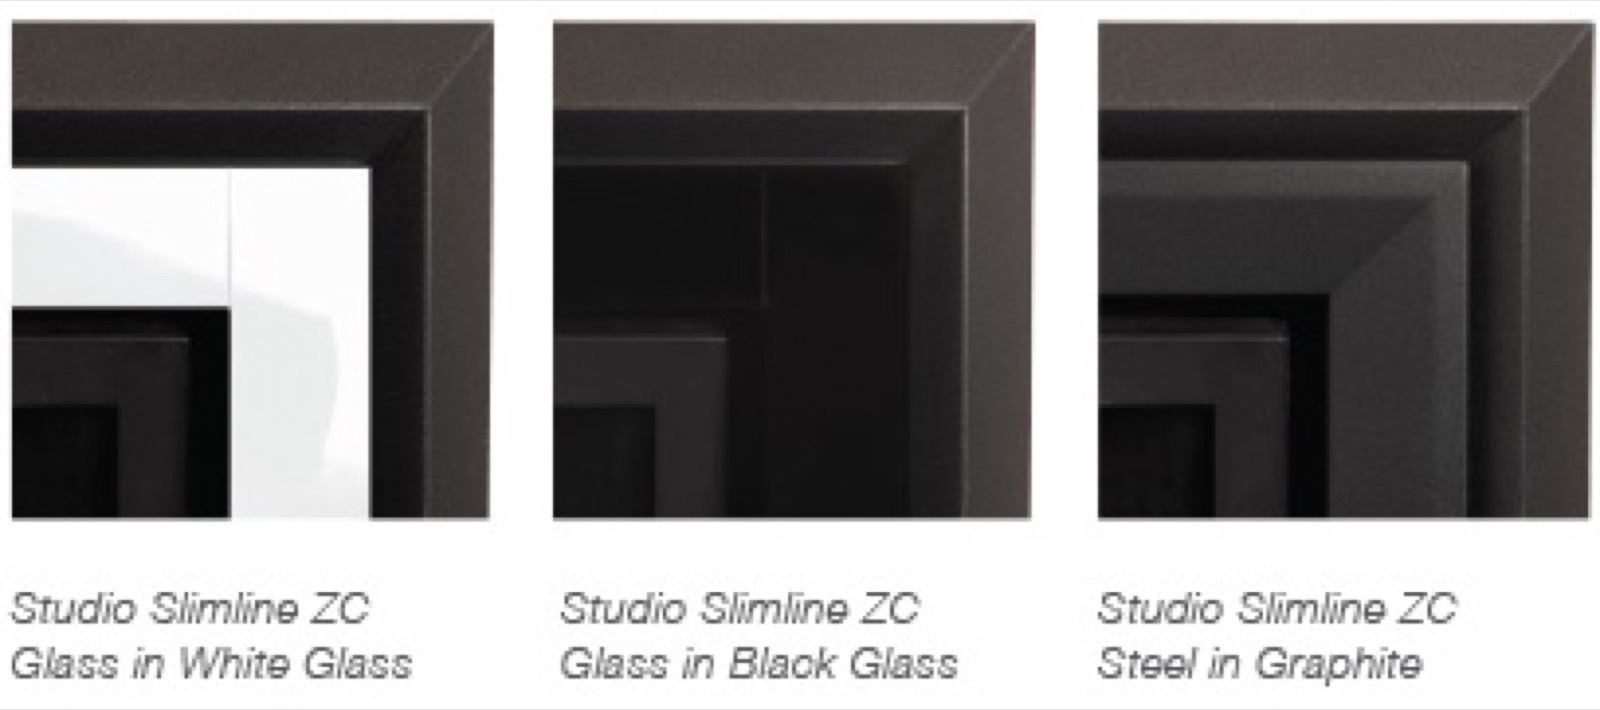 Gazco Zero Clearance Frame Kit in Black Glass for Studio 1 Slimline Glass  Fronted Gas Fire